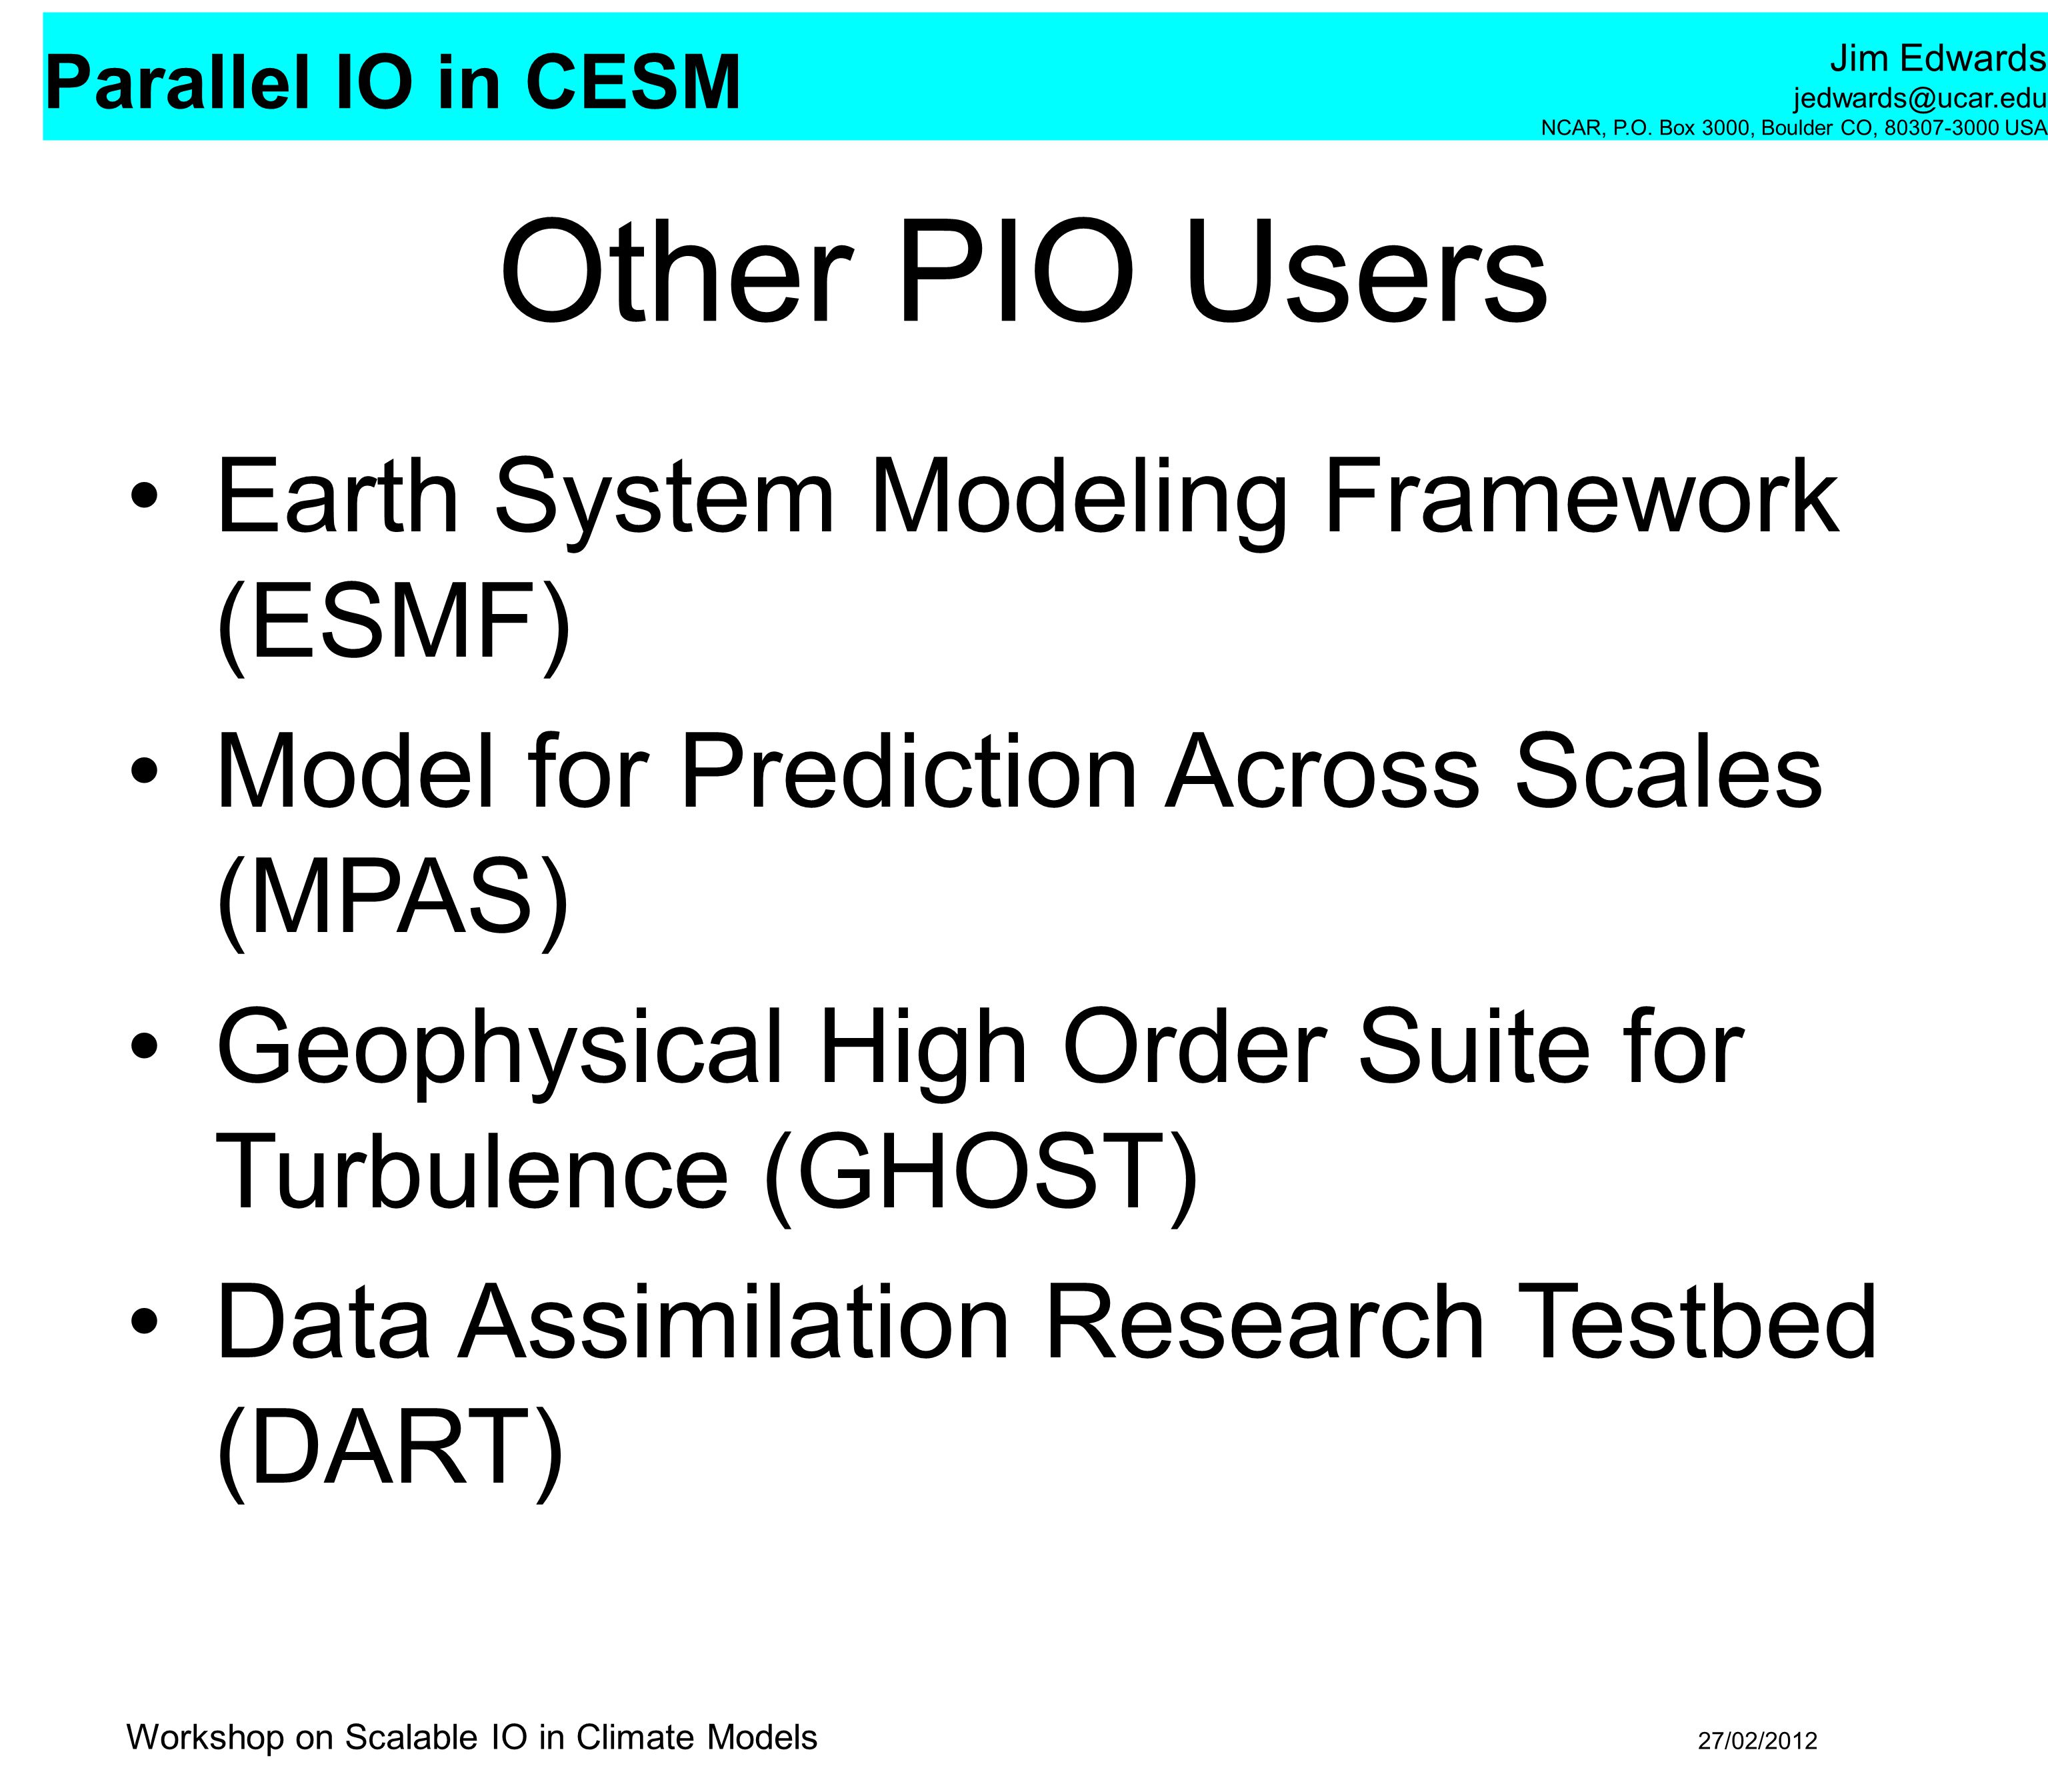 Other PIO Users Earth System Modeling Framework (ESMF)